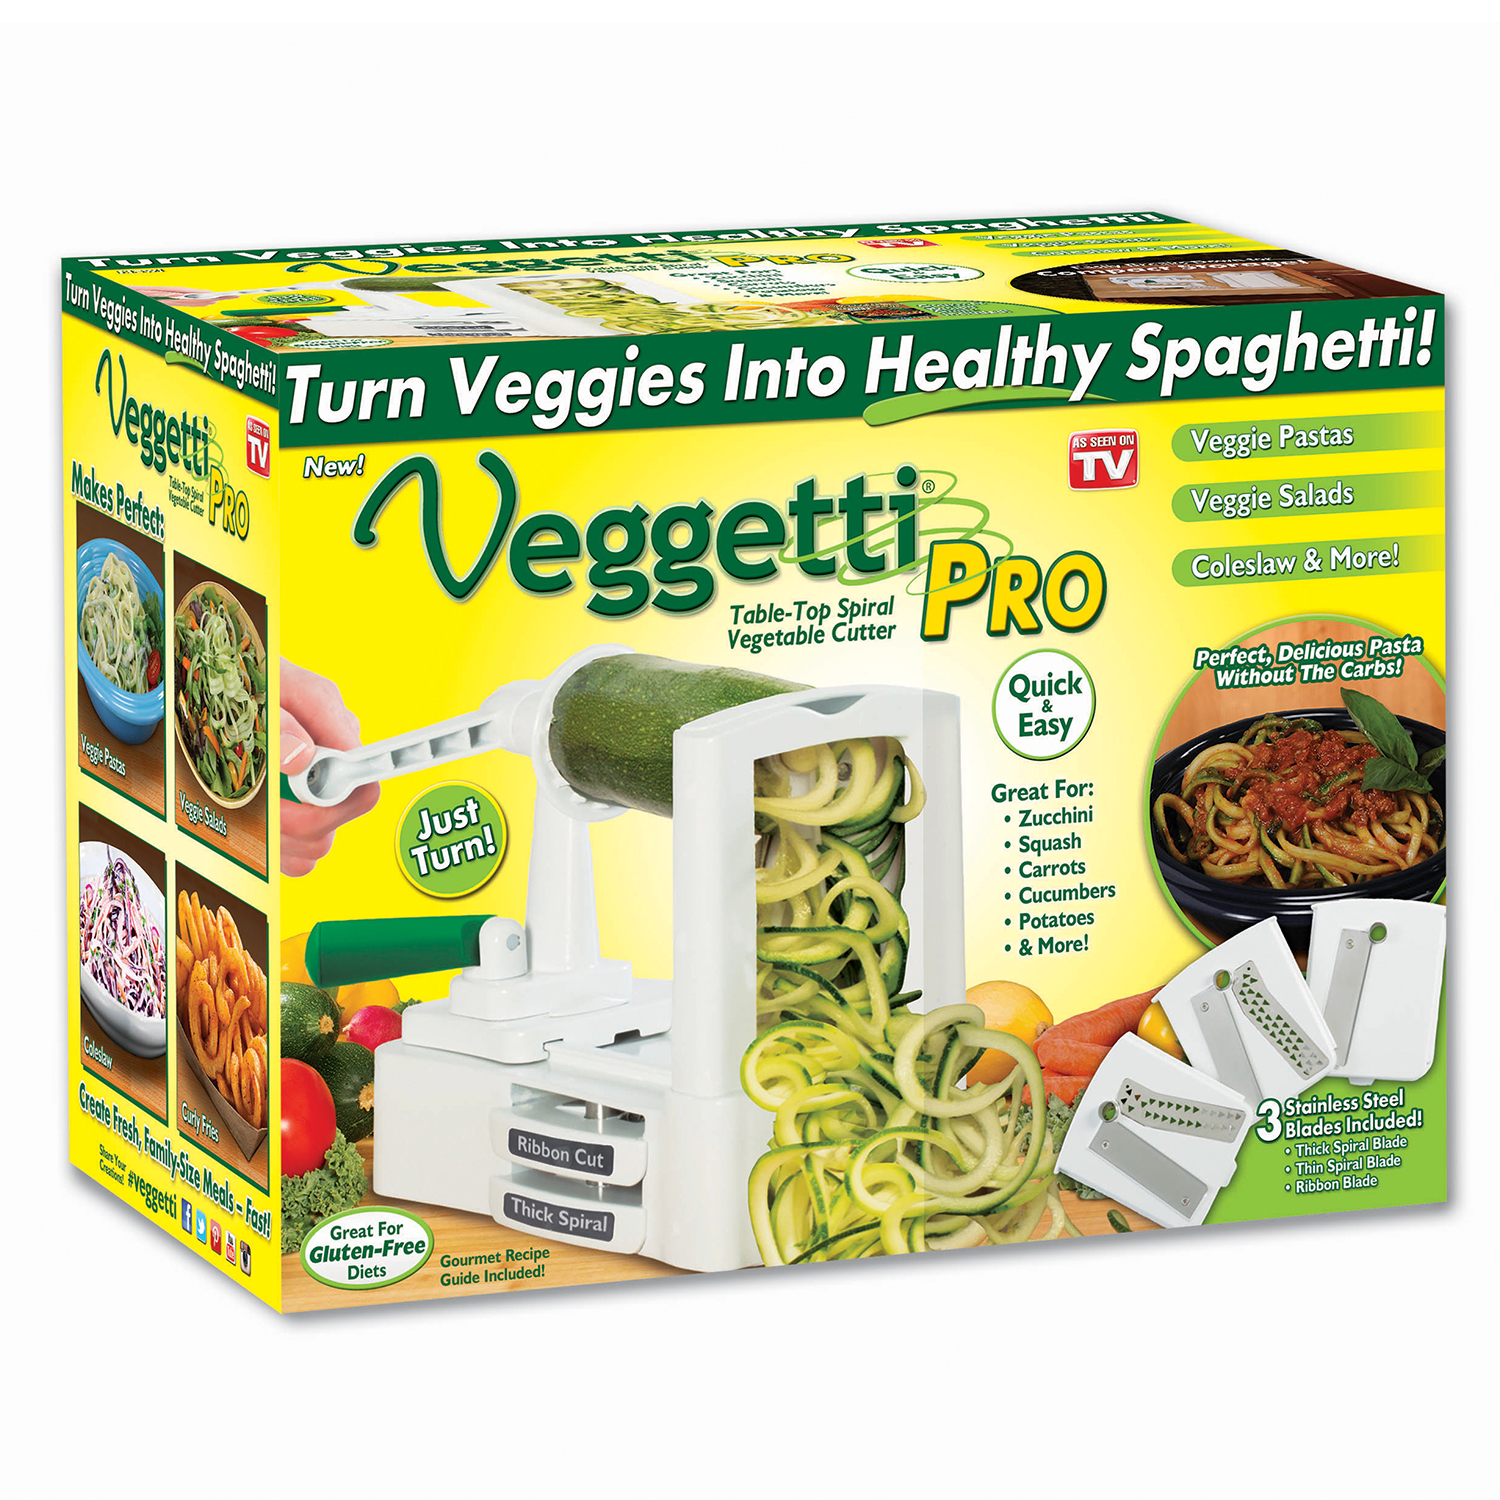 Veggetti Pro Vegetable Spiralizer As Seen on TV